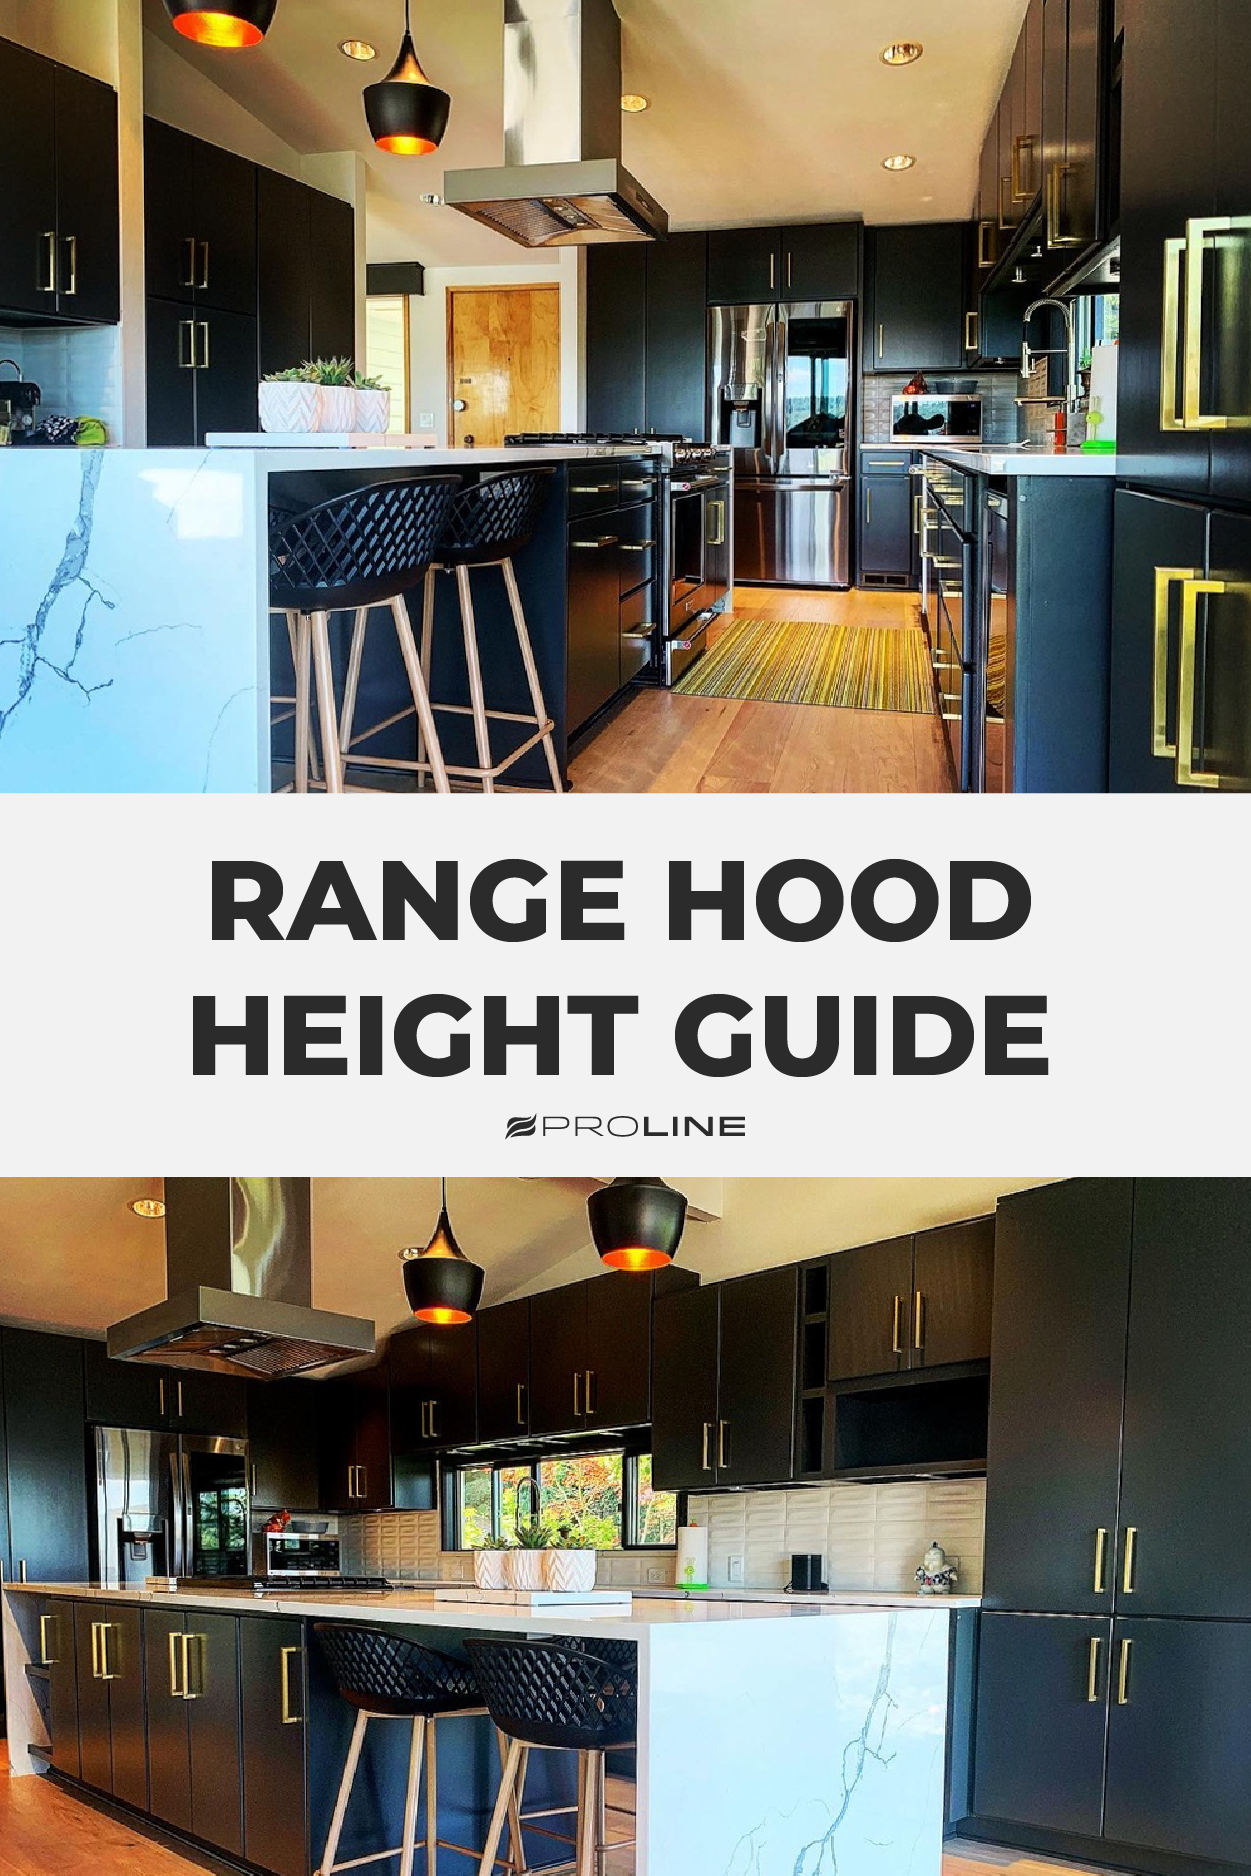 Range Hood Mounting Height Comprehensive Guide Range Hood Range Hood Insert Outdoor Range Hood